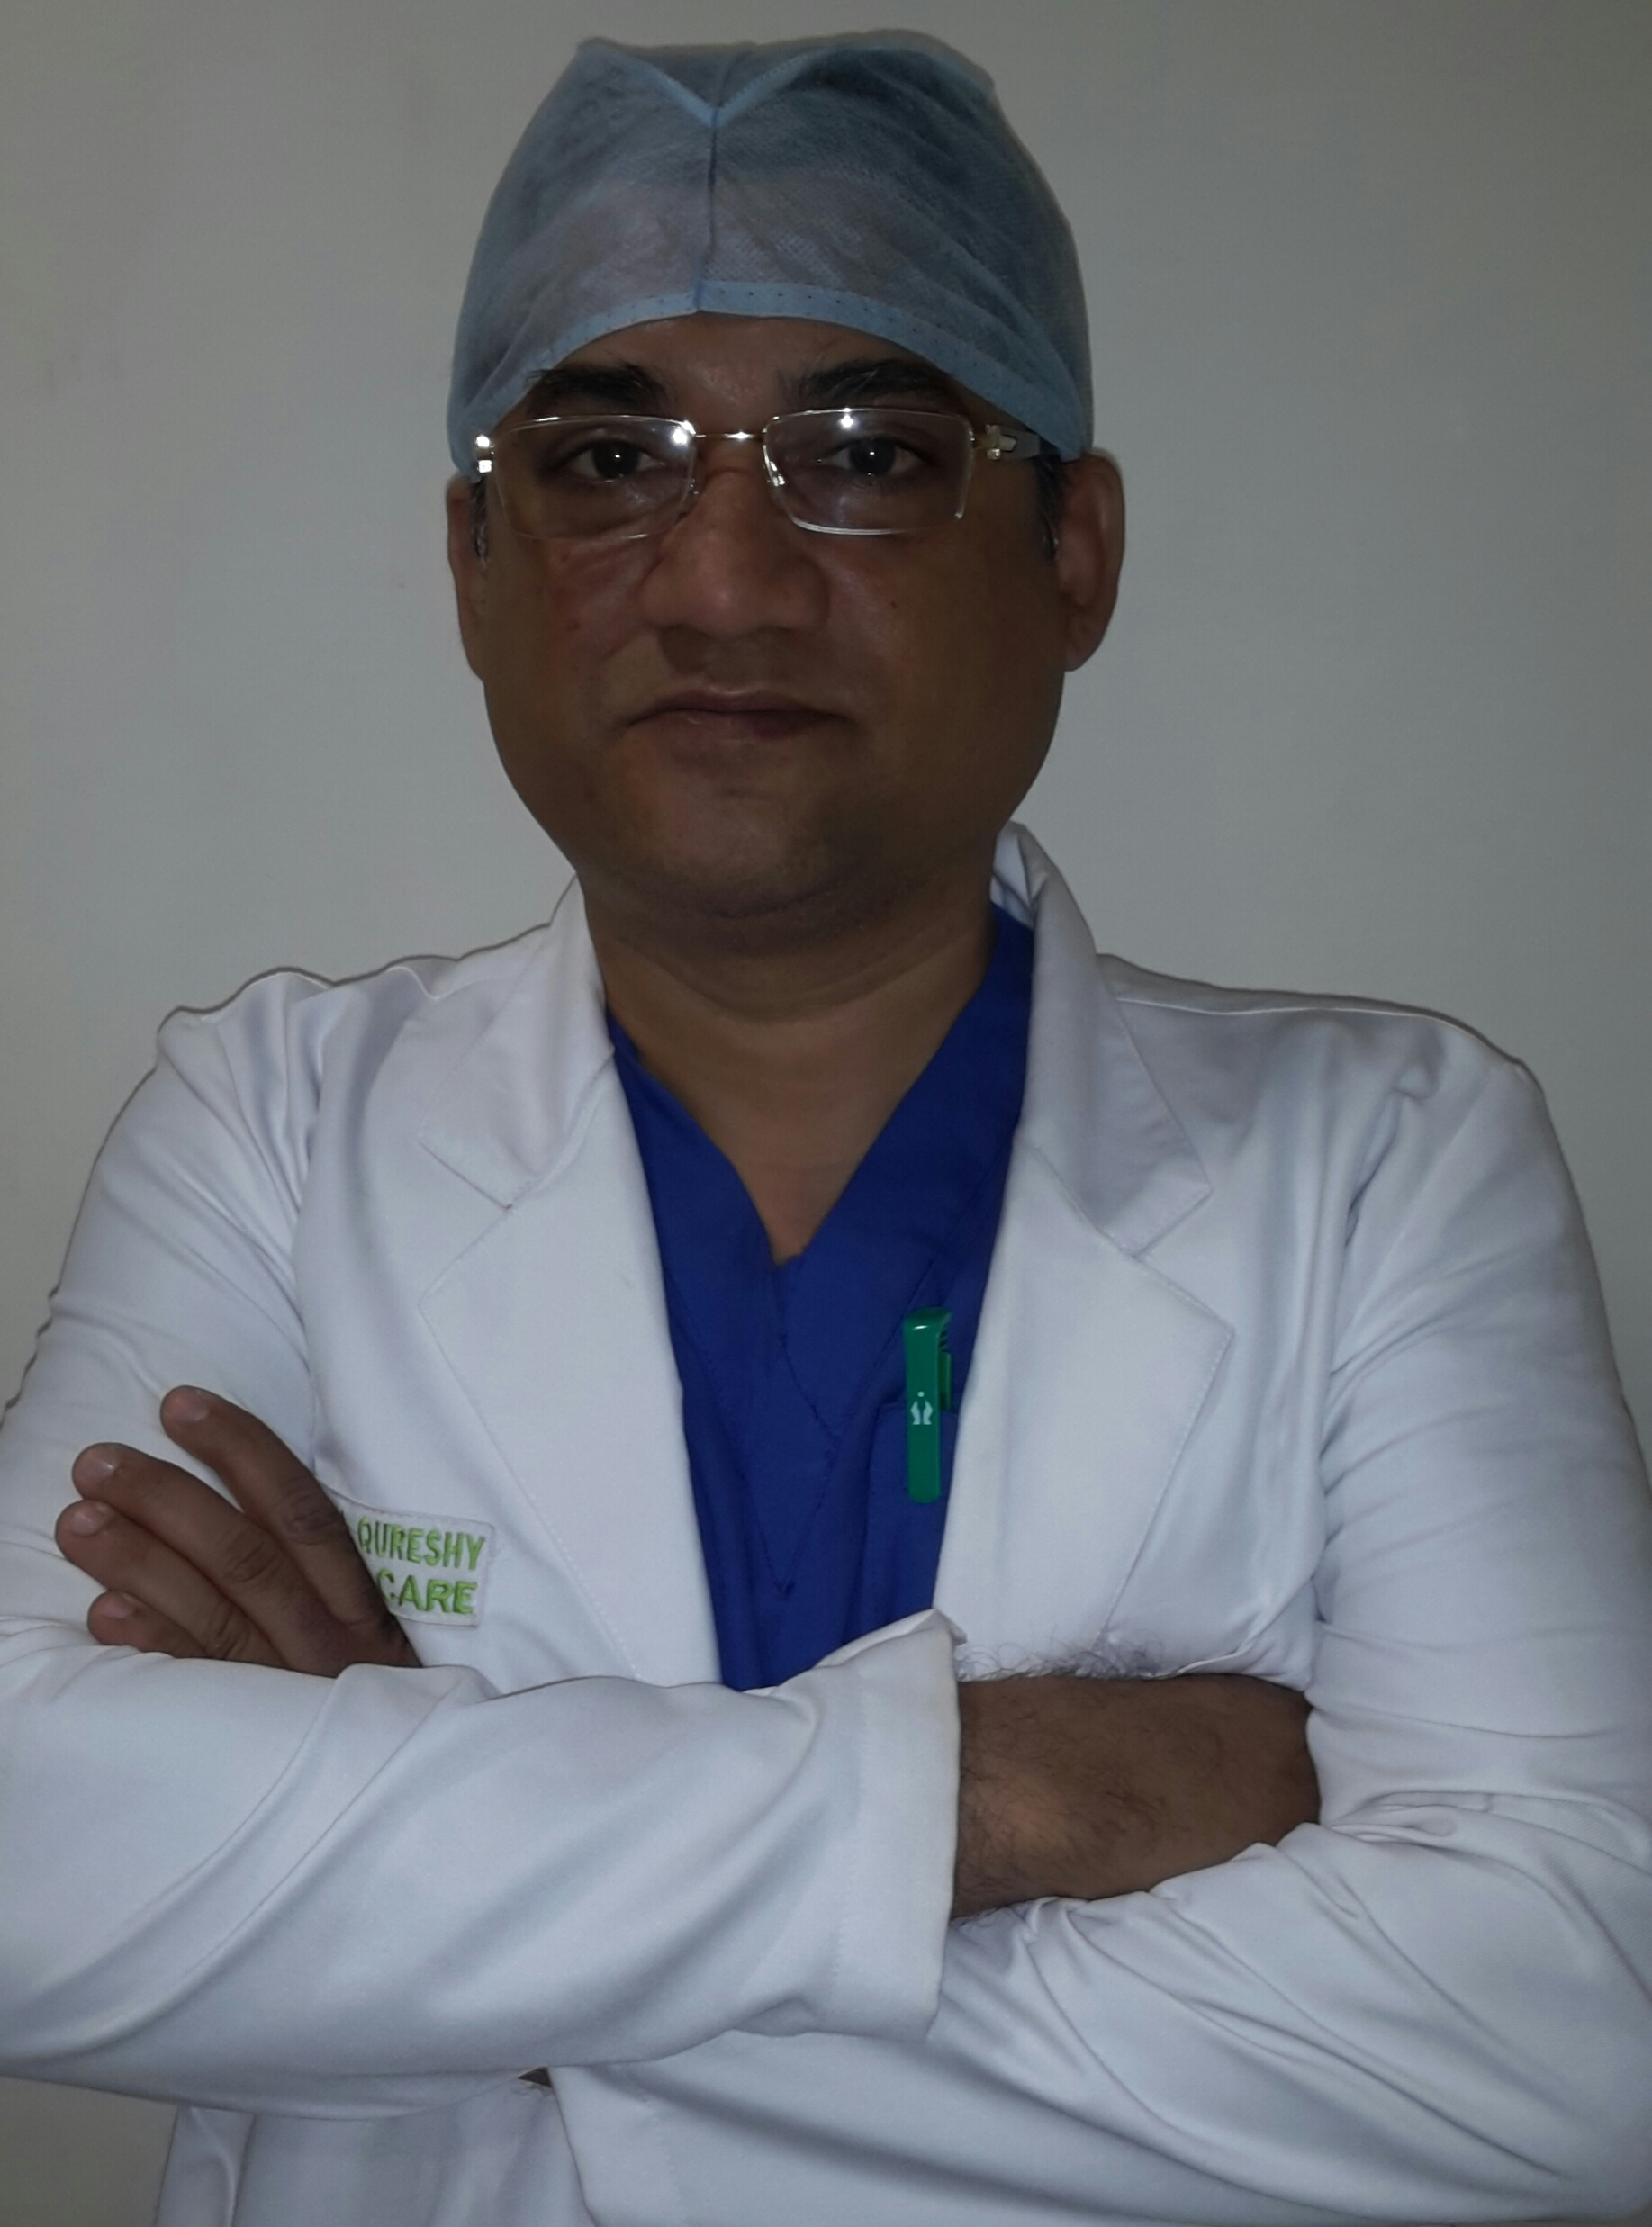 Dr. Javed Qureshy